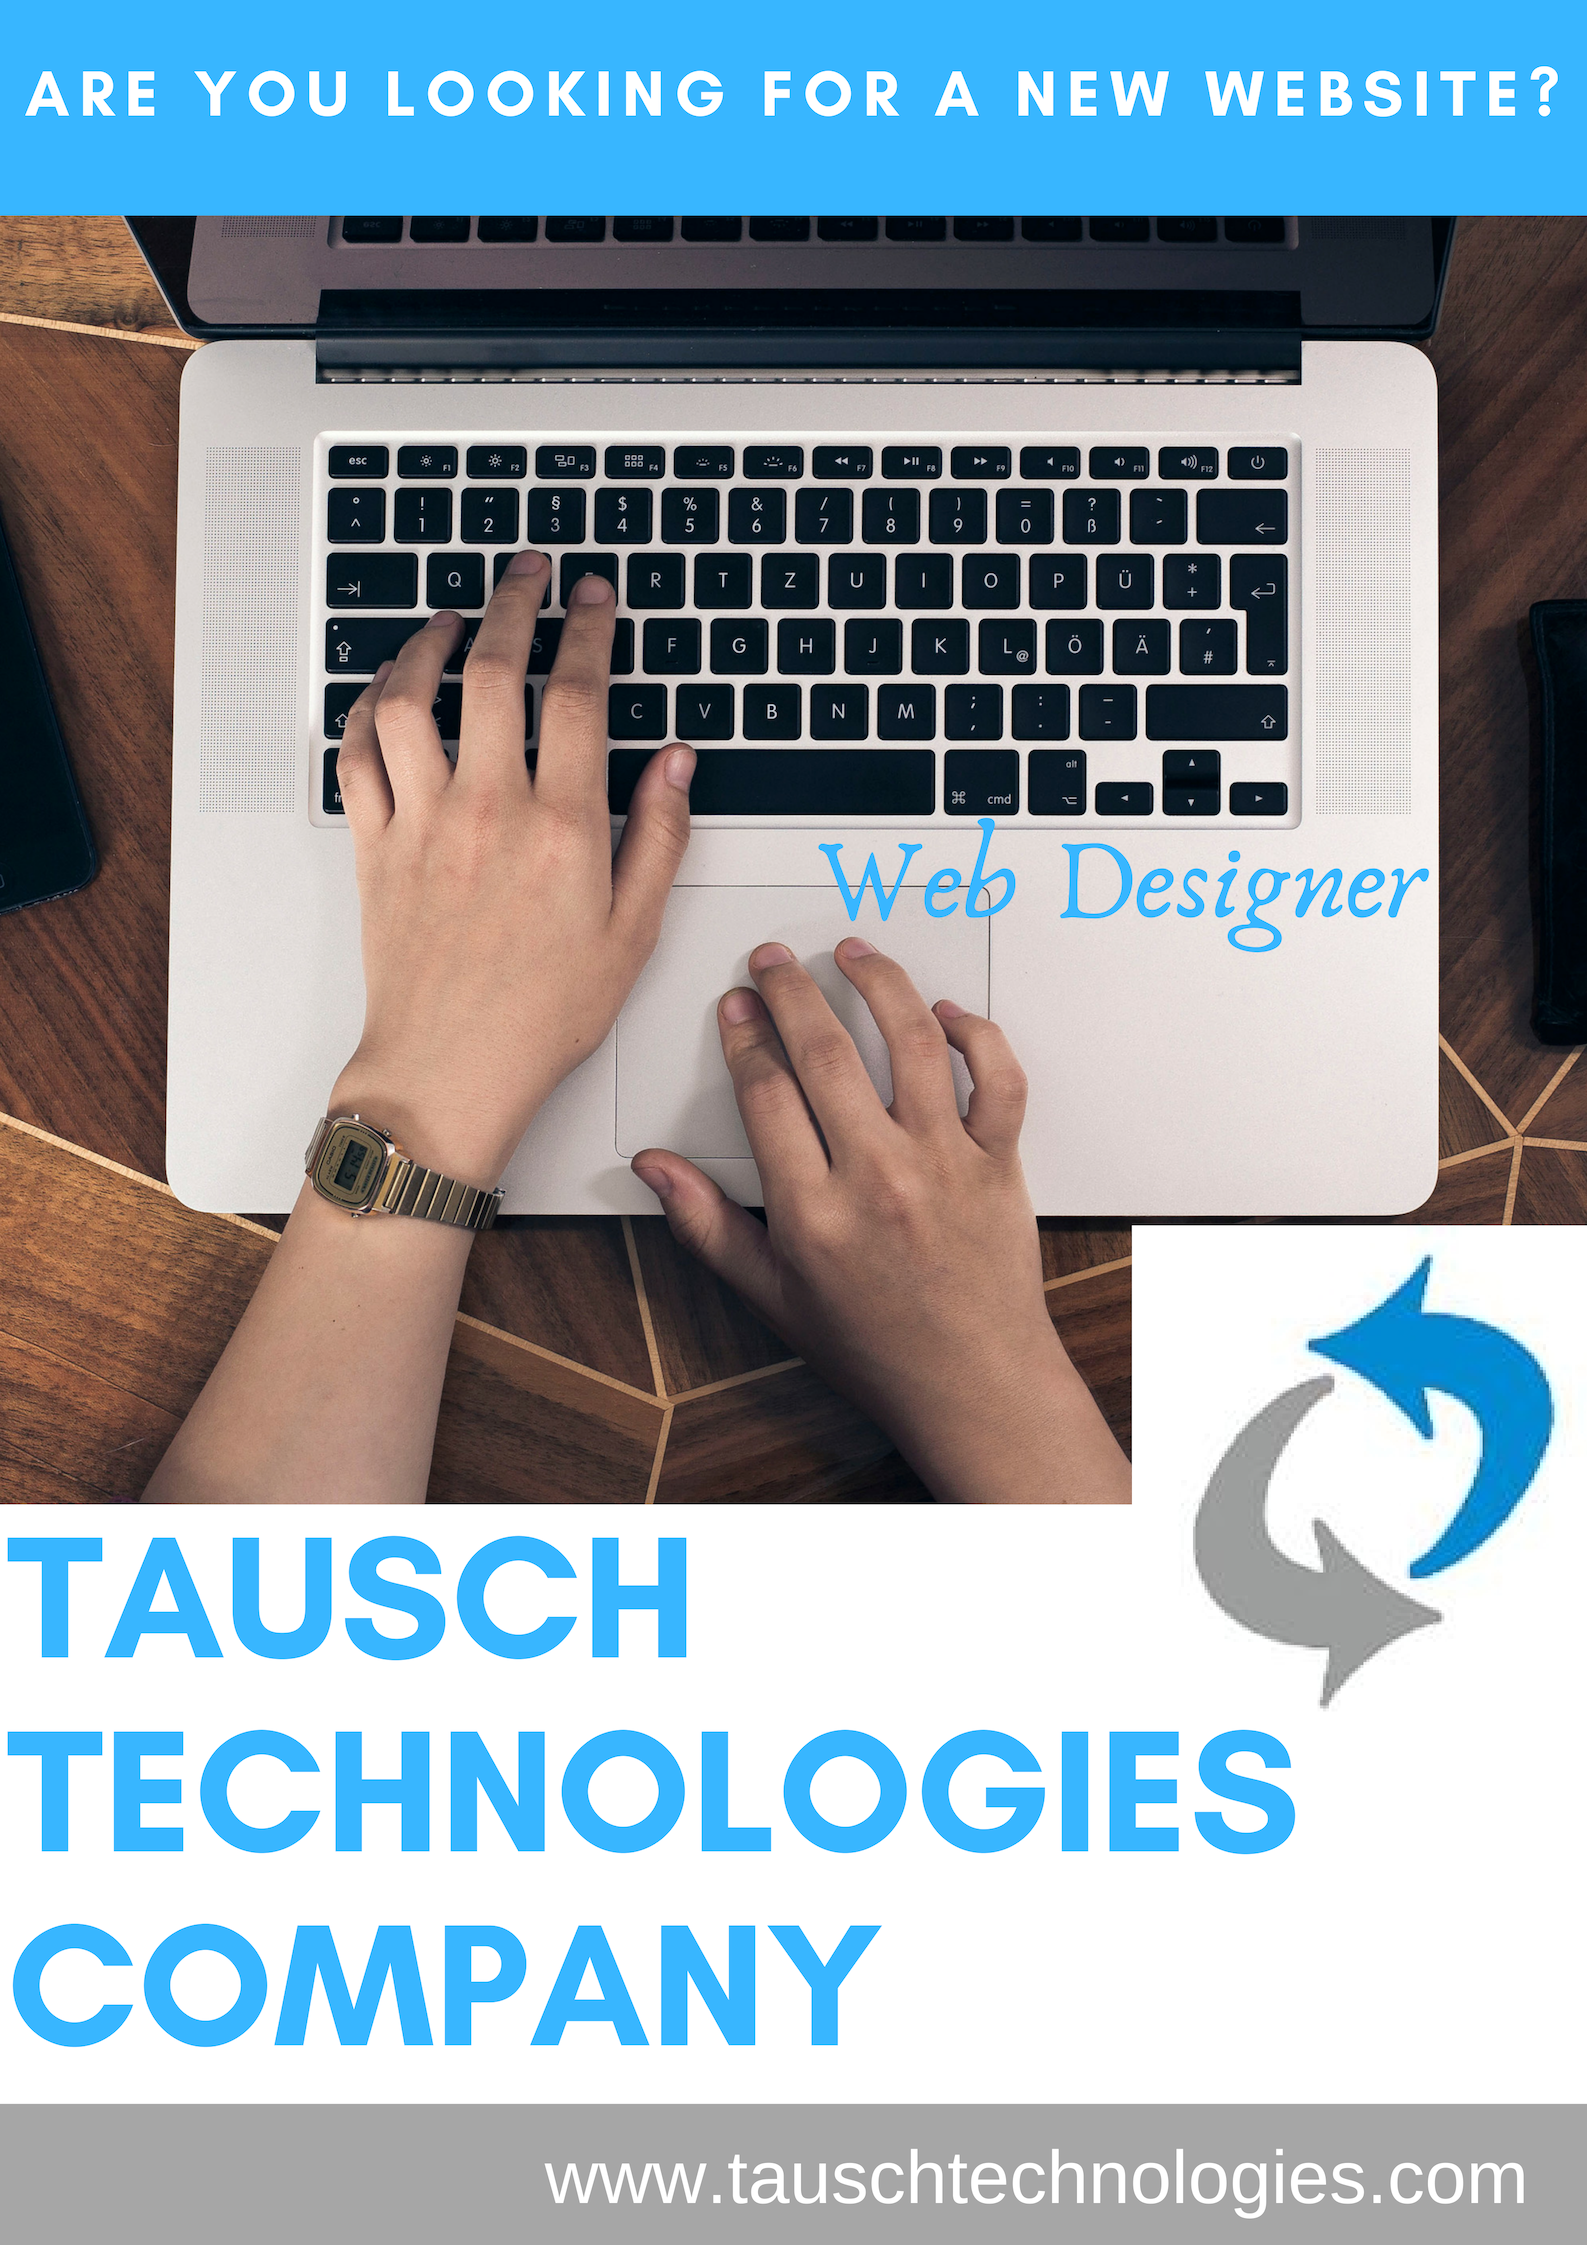 Tausch Technologies Is An It Solutions And Services Company In Hyderabad Web Designing Development Digit Web Design Services Creative Web Design Web Design